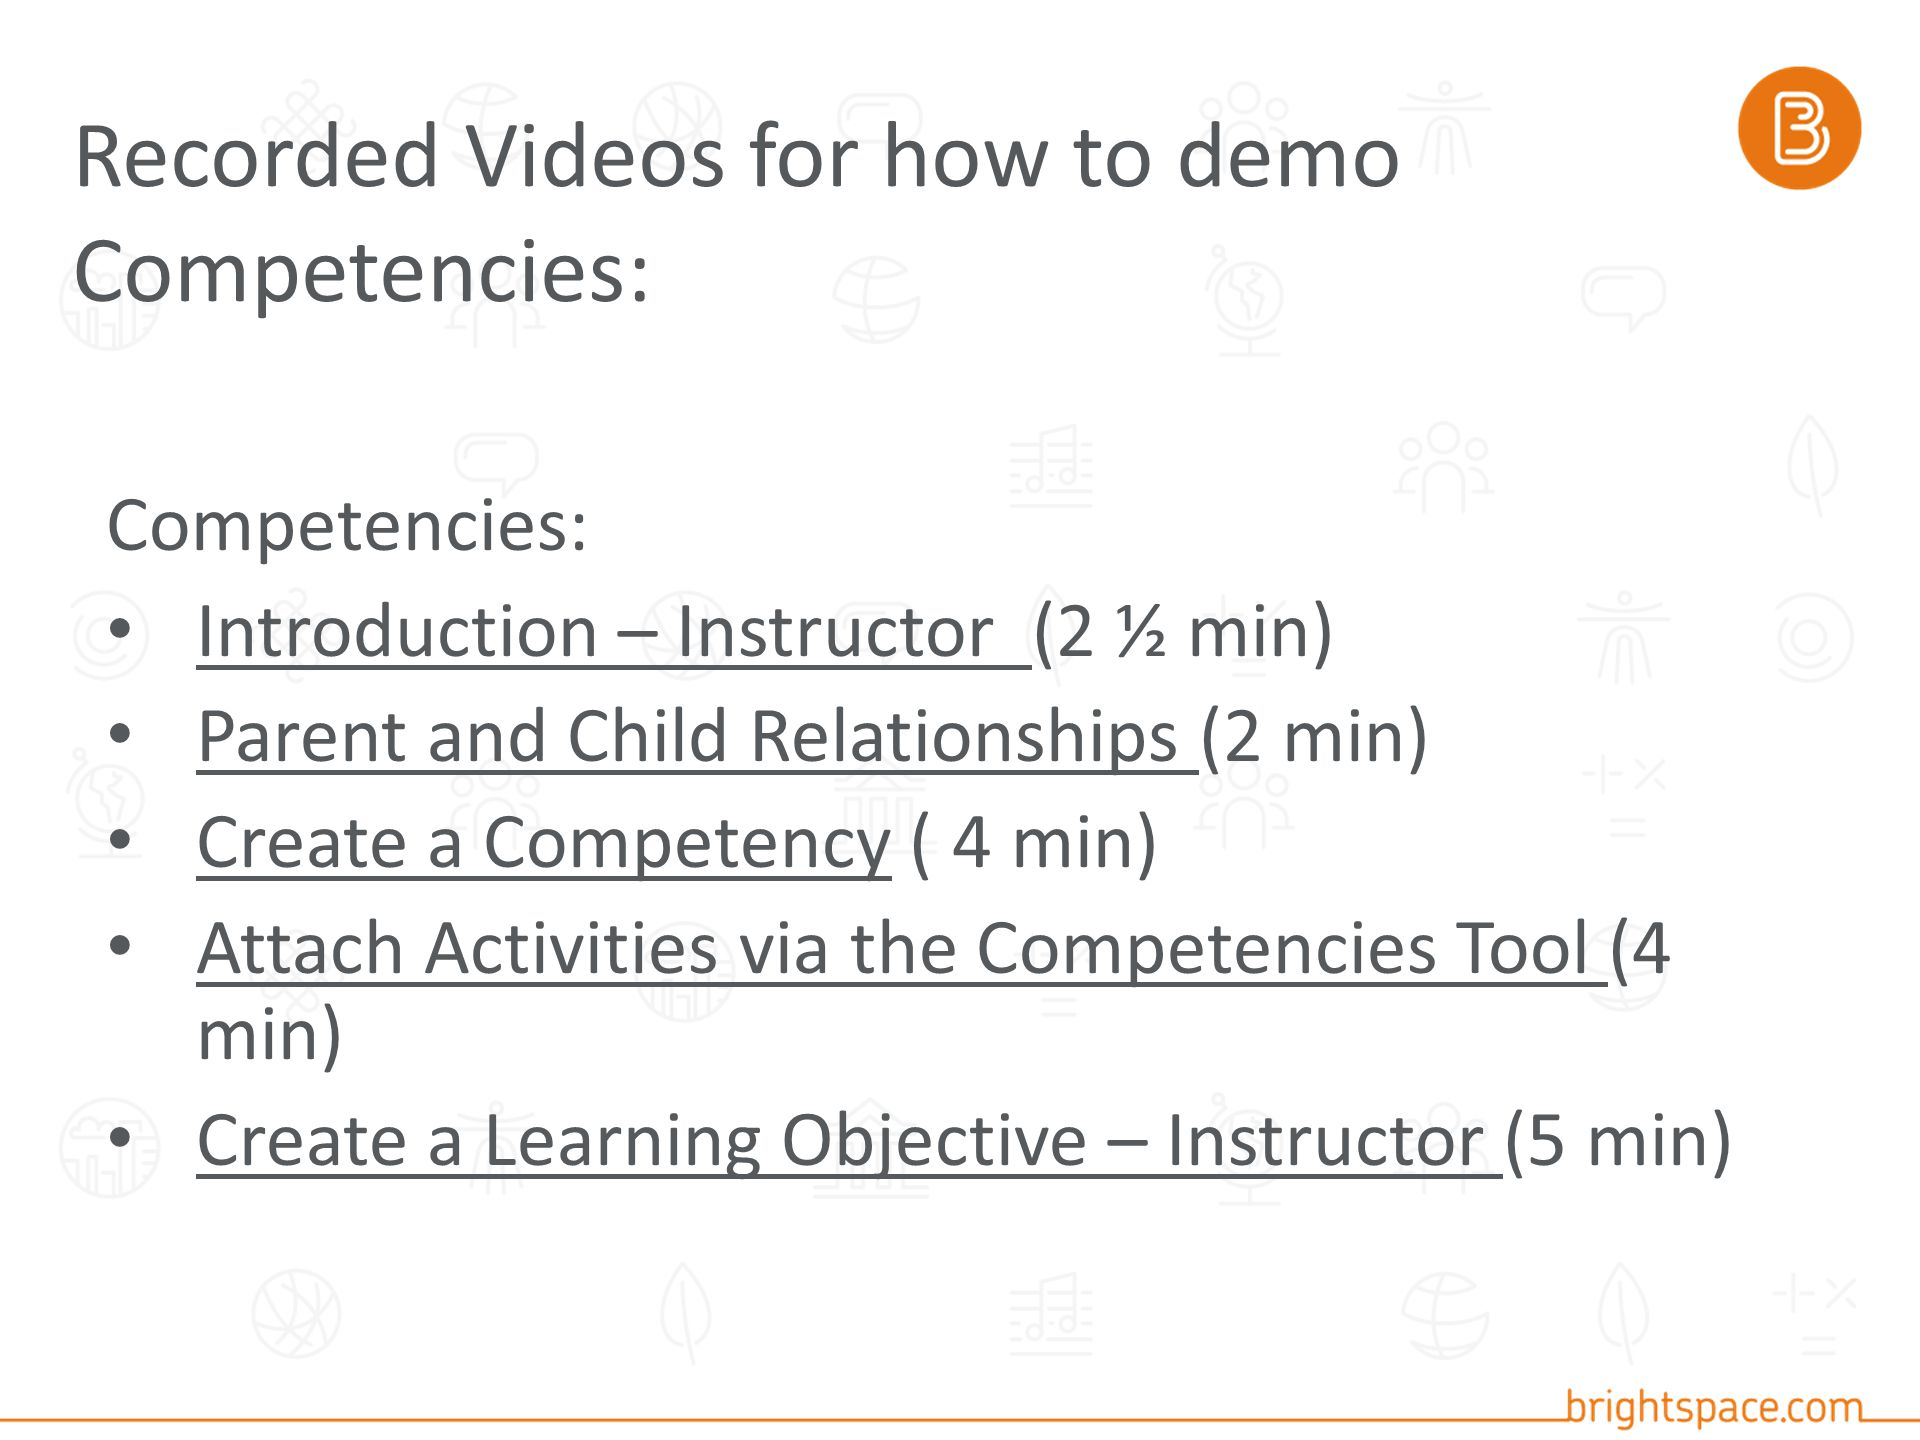 Competencies: Introduction – Instructor (2 ½ min) Introduction – Instructor Parent and Child Relationships (2 min) Parent and Child Relationships Create a Competency ( 4 min) Create a Competency Attach Activities via the Competencies Tool (4 min) Attach Activities via the Competencies Tool Create a Learning Objective – Instructor (5 min) Create a Learning Objective – Instructor Recorded Videos for how to demo Competencies: